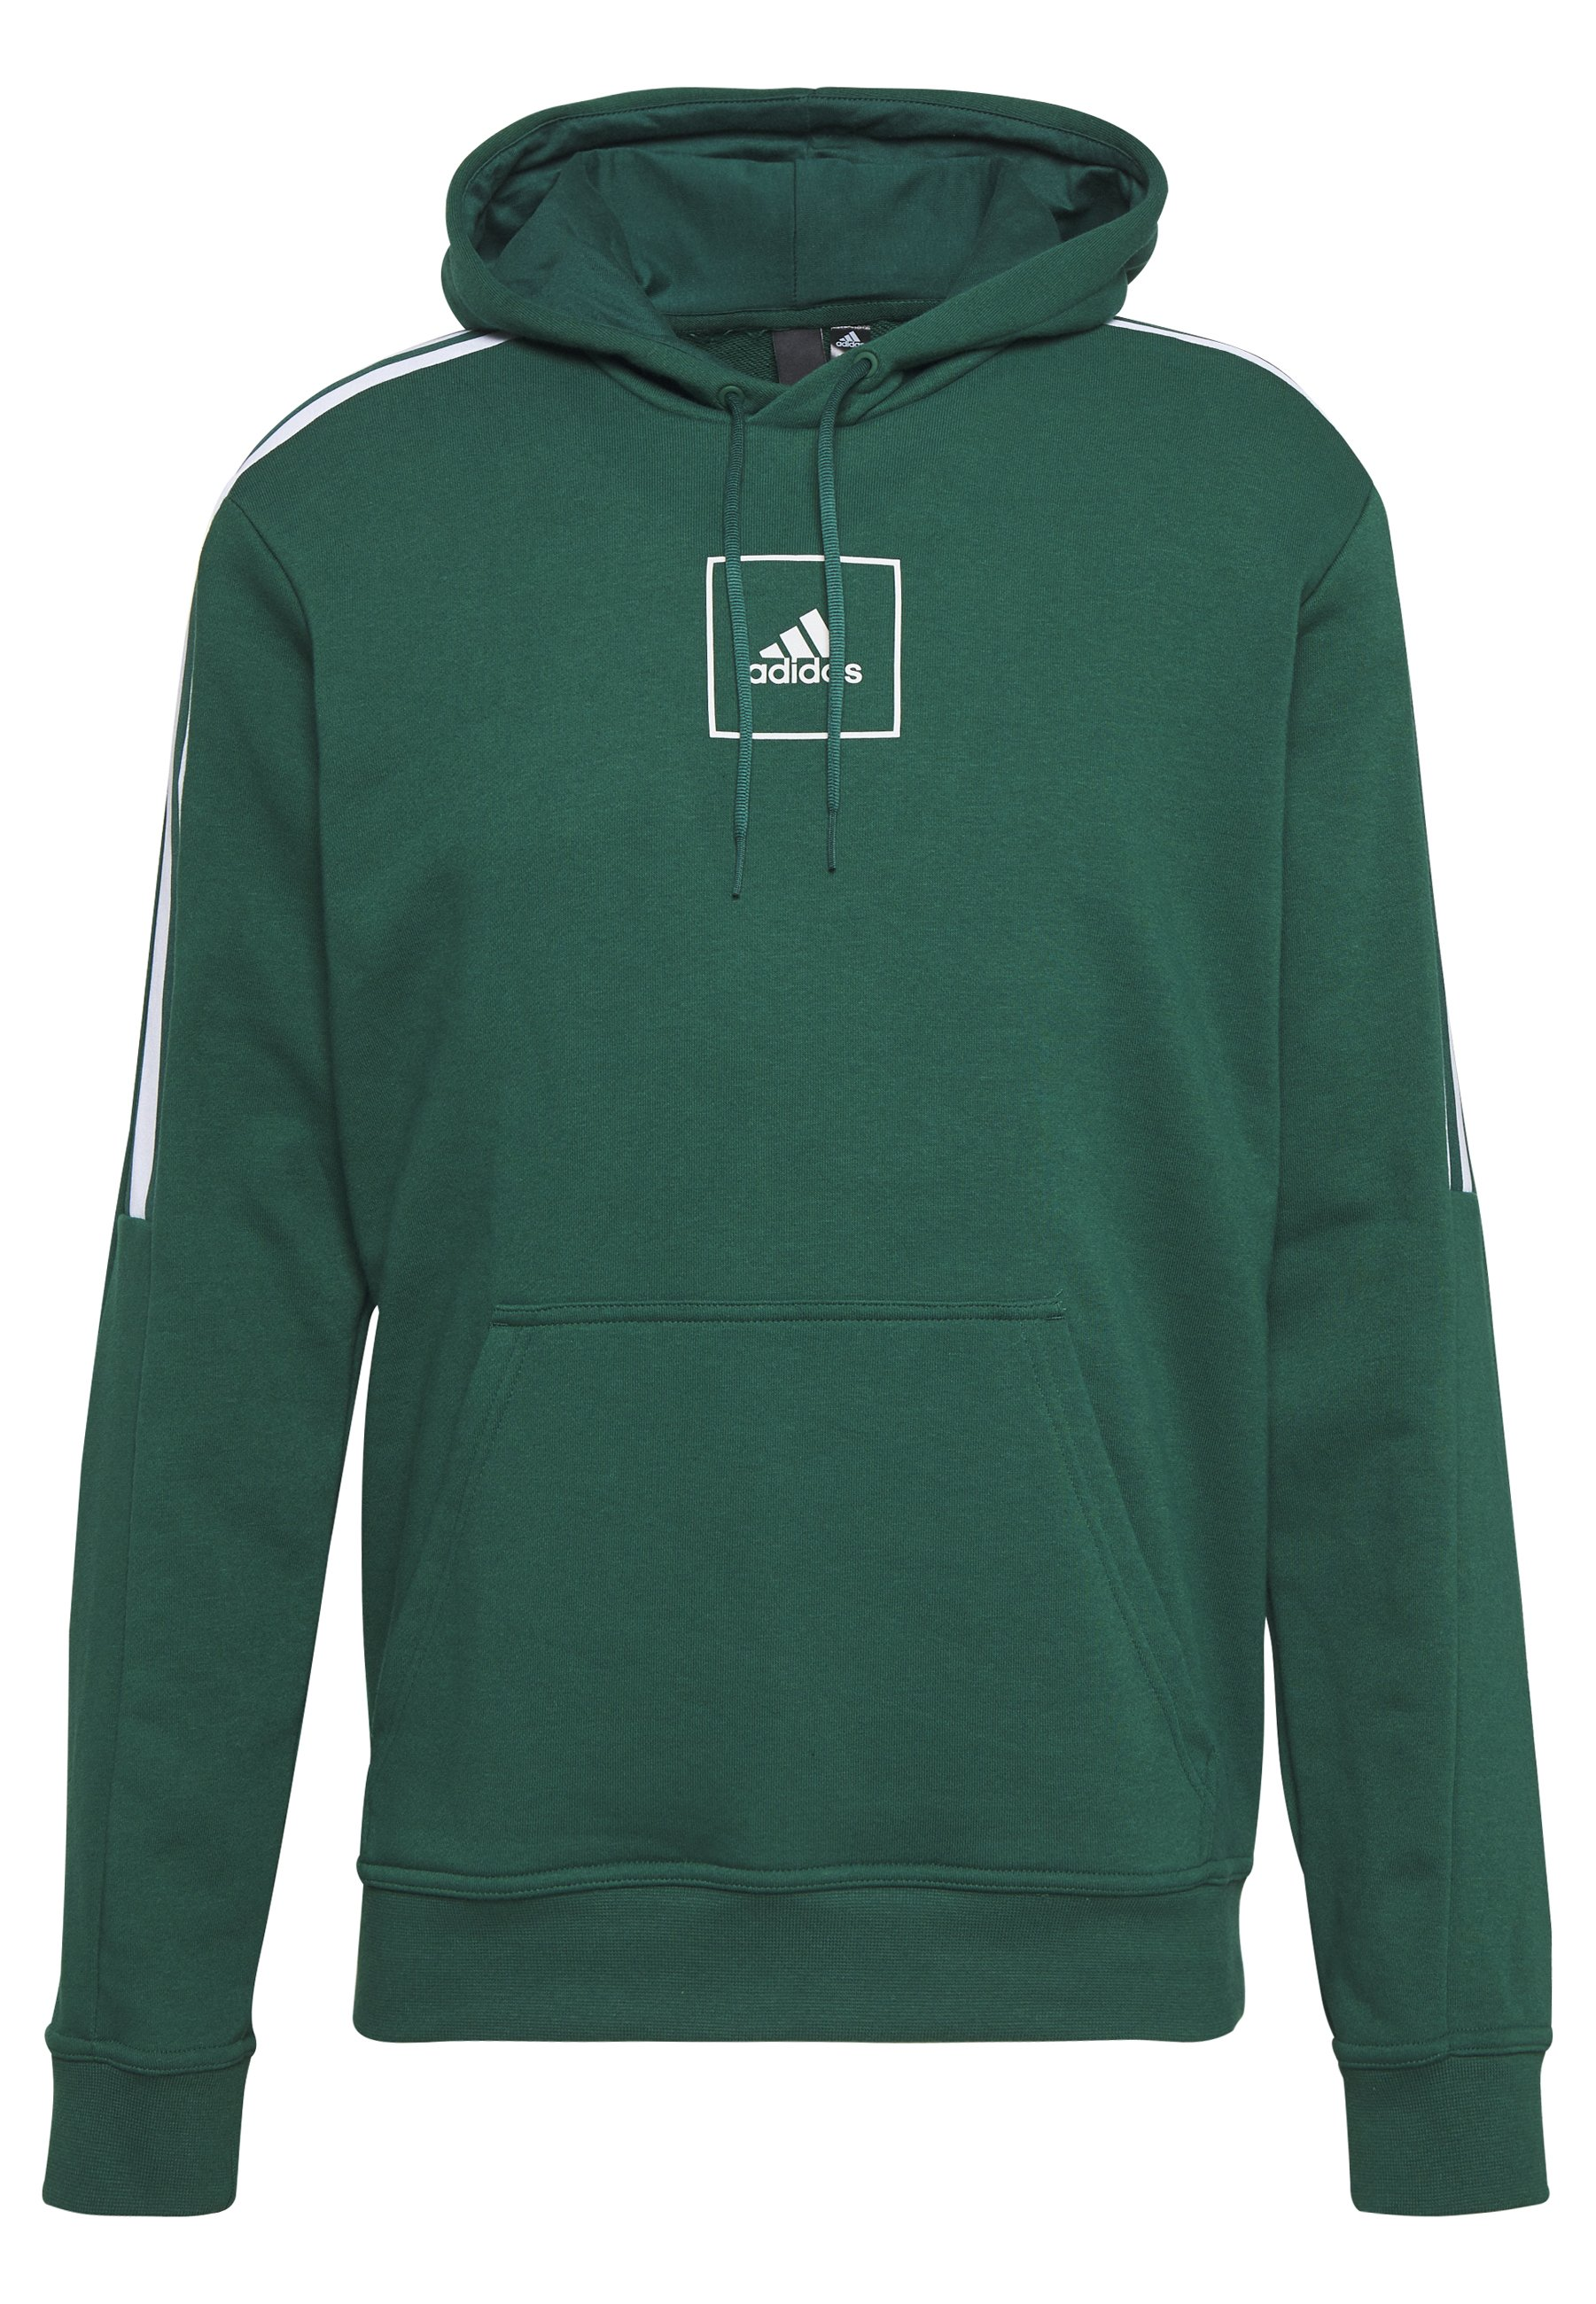 Vêtements adidas Originals TREFOIL Sweat à capuche green